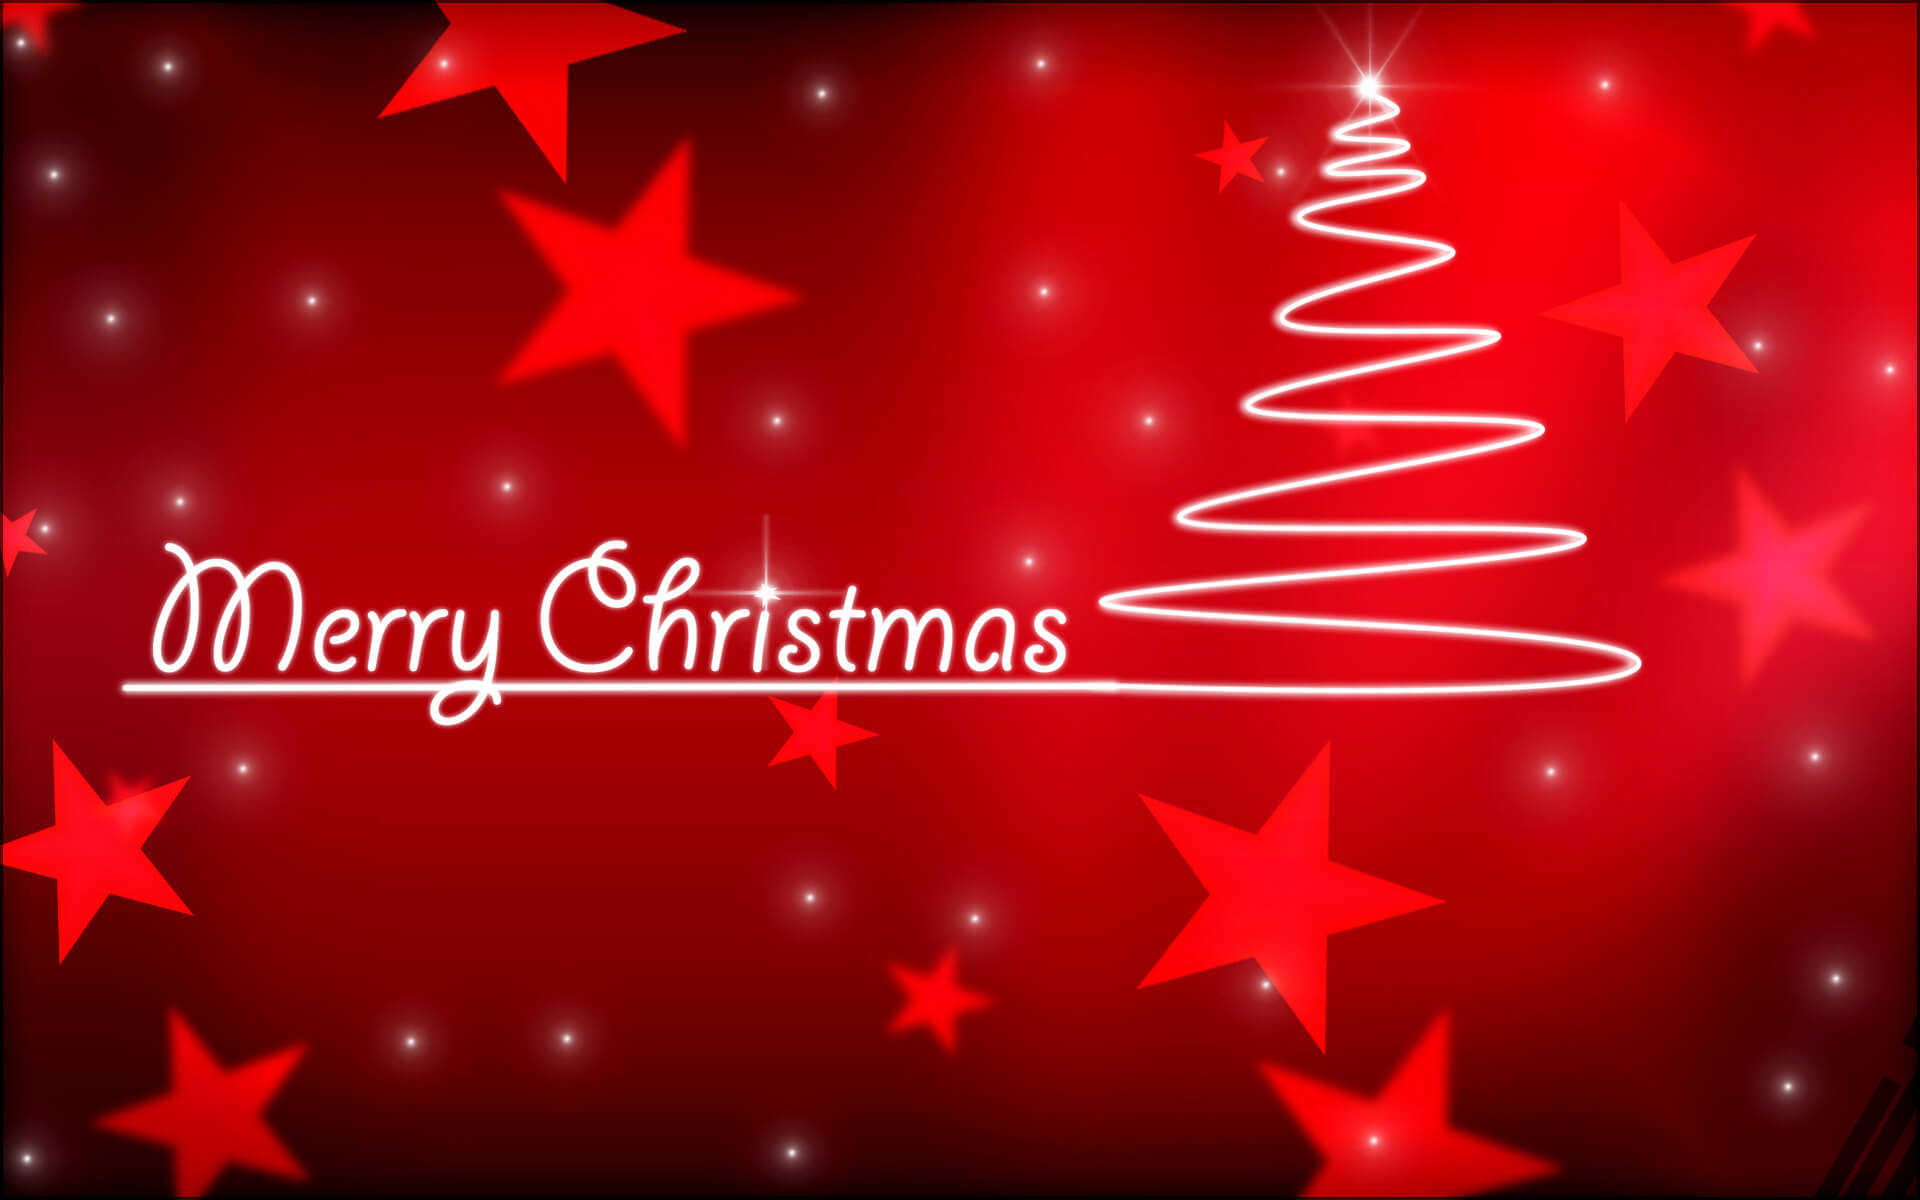 Happy Christmas Images HD